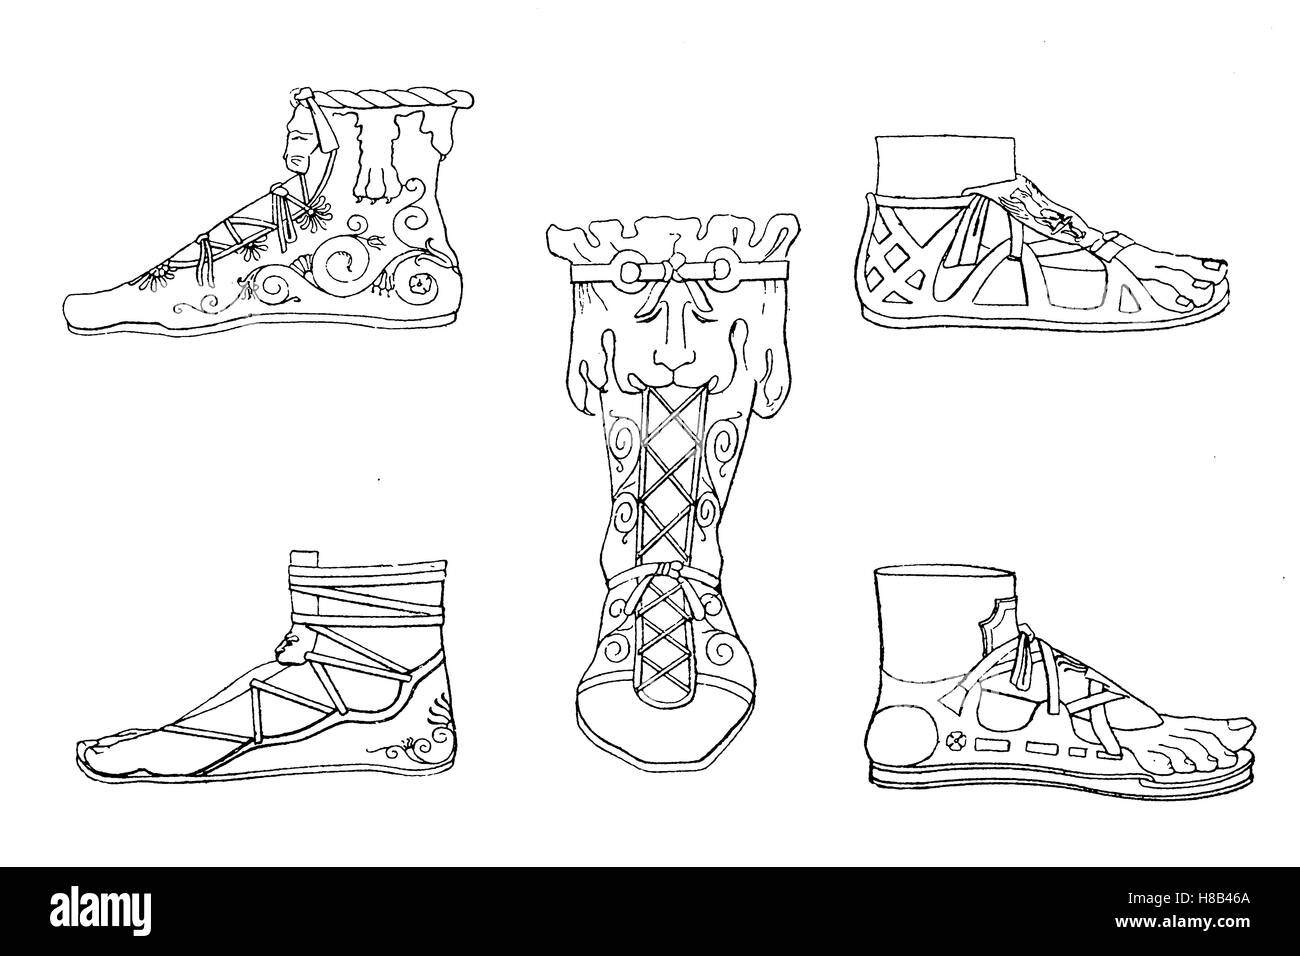 Roman shoemaker of antiquity, in the time of Emperor Constantine, History of fashion, costume story - Stock Image